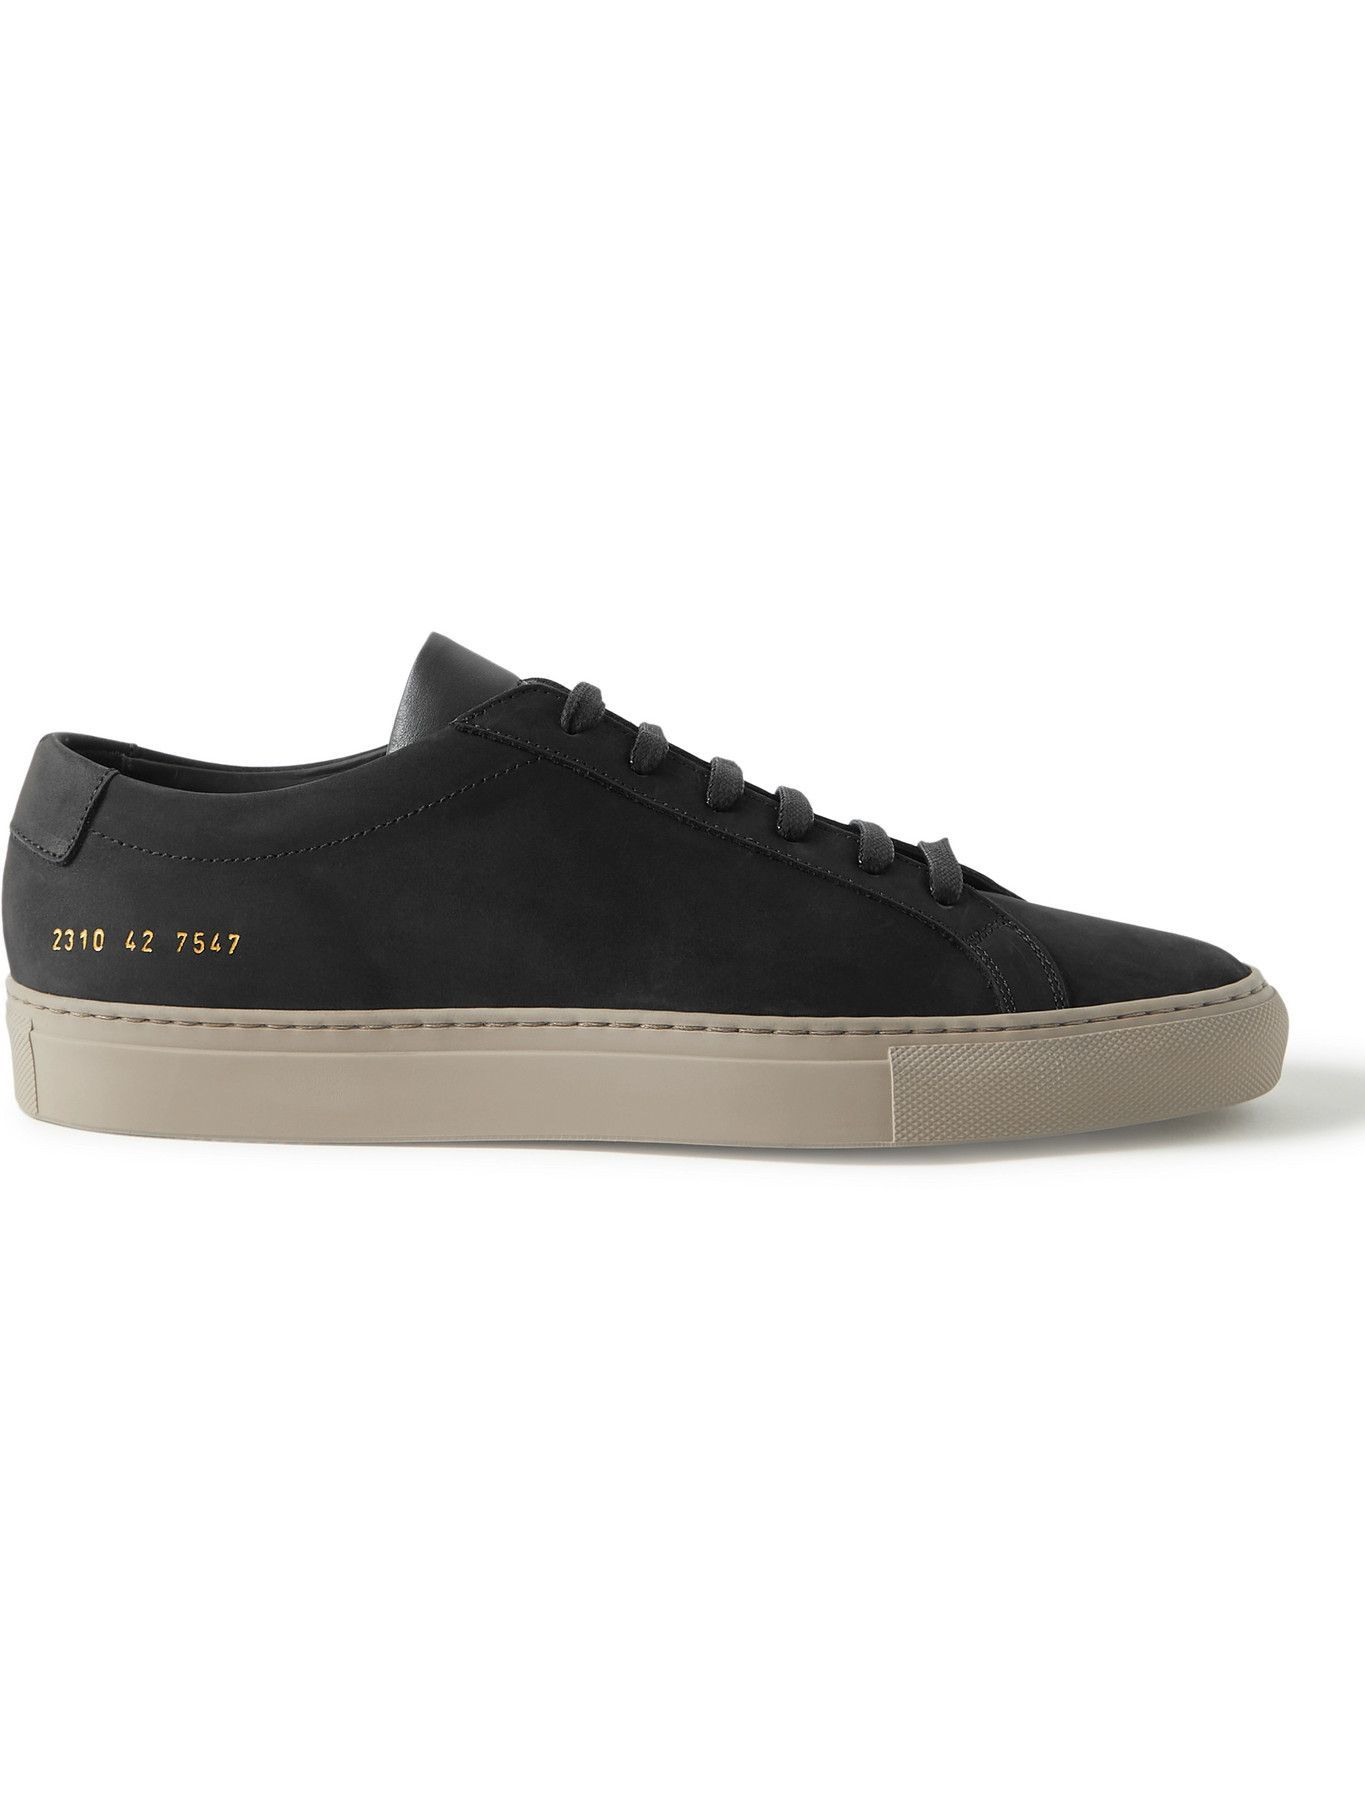 Common Projects - Original Achilles Nubuck and Leather Sneakers - Black